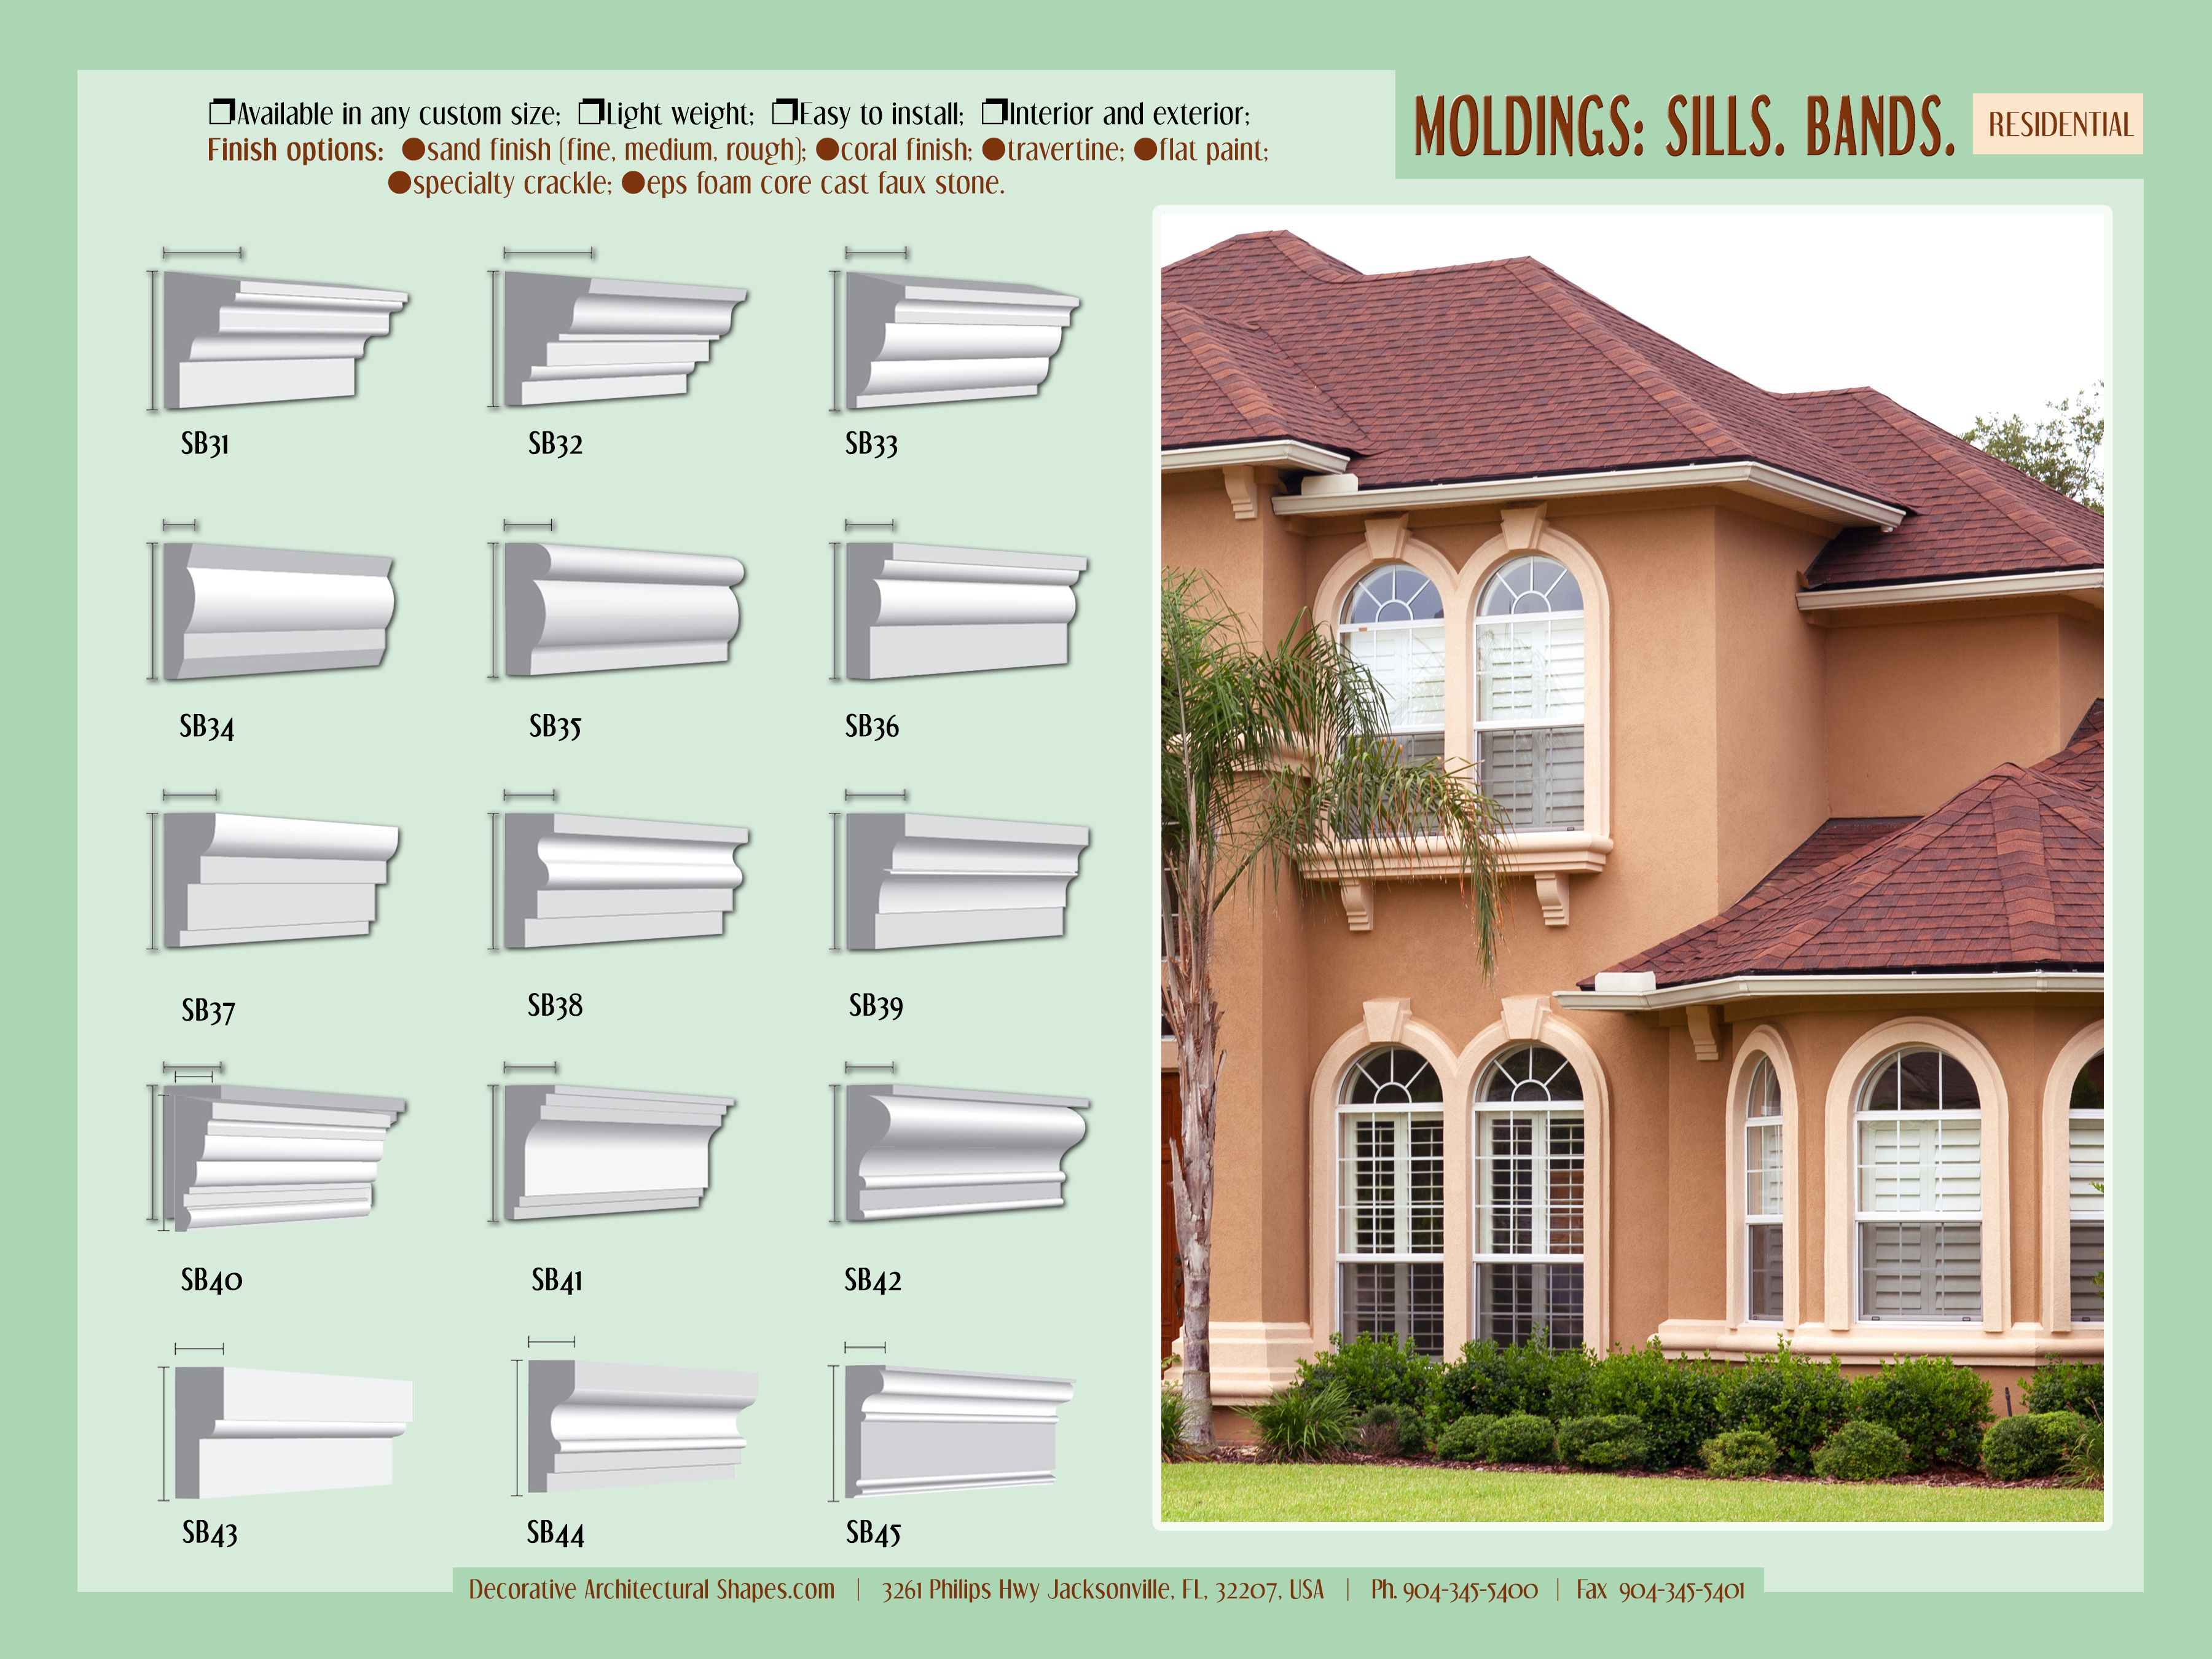 Pin By Decorative Architectural Shape On Decorative Architectural Shapes Catalog Cornice Design Moldings And Trim Stucco Exterior